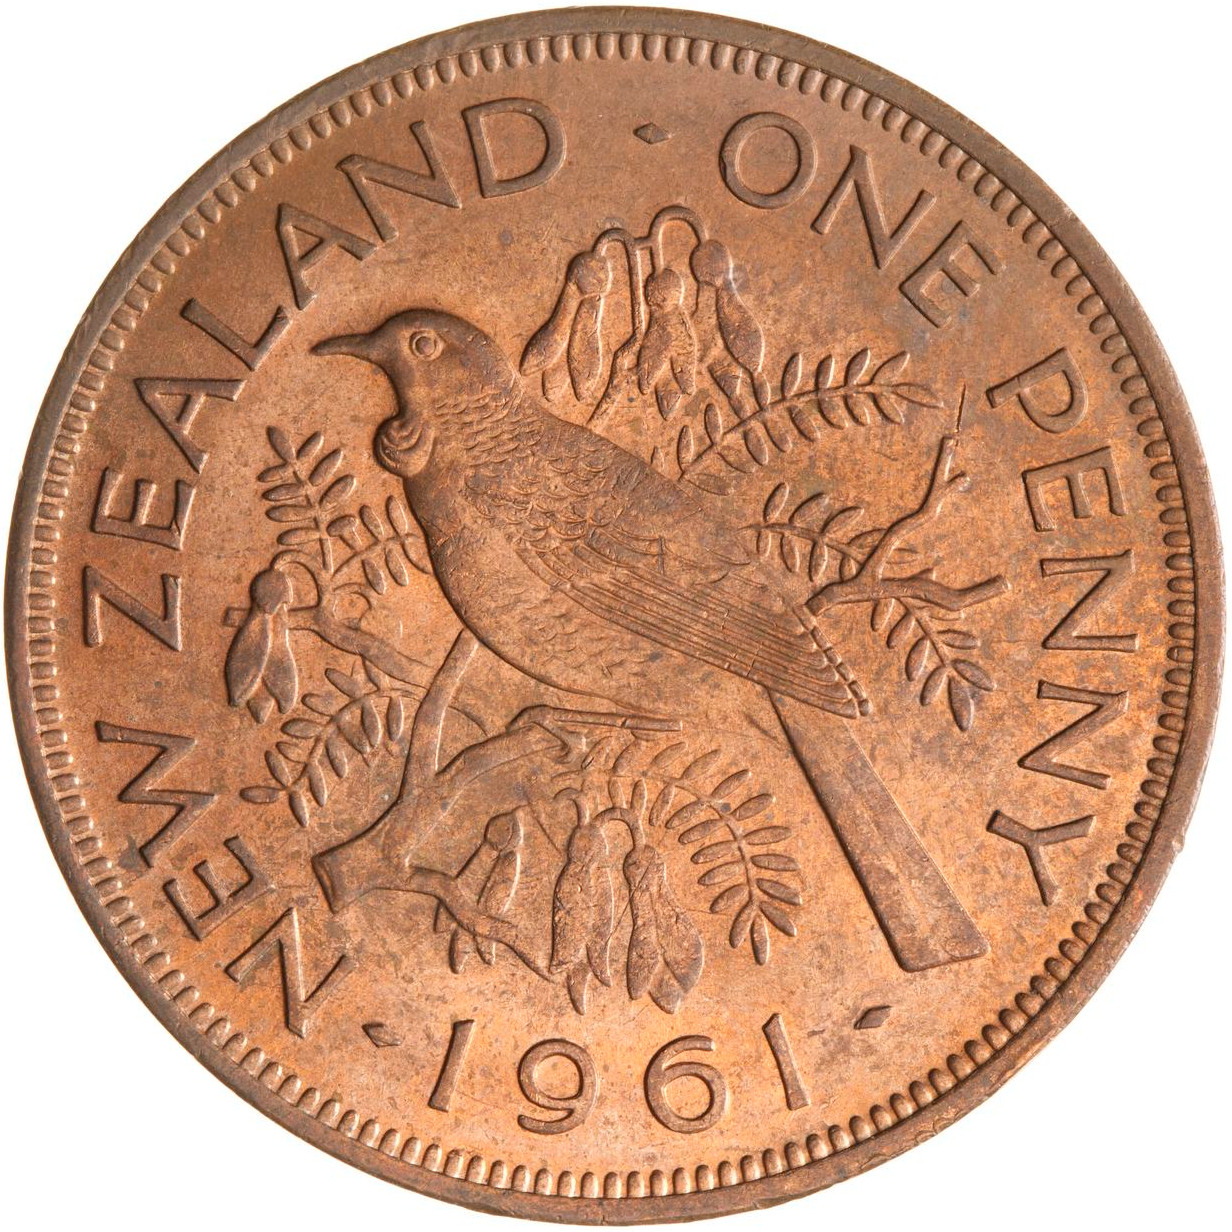 Penny 1961: Photo Coin - 1 Penny, New Zealand, 1961